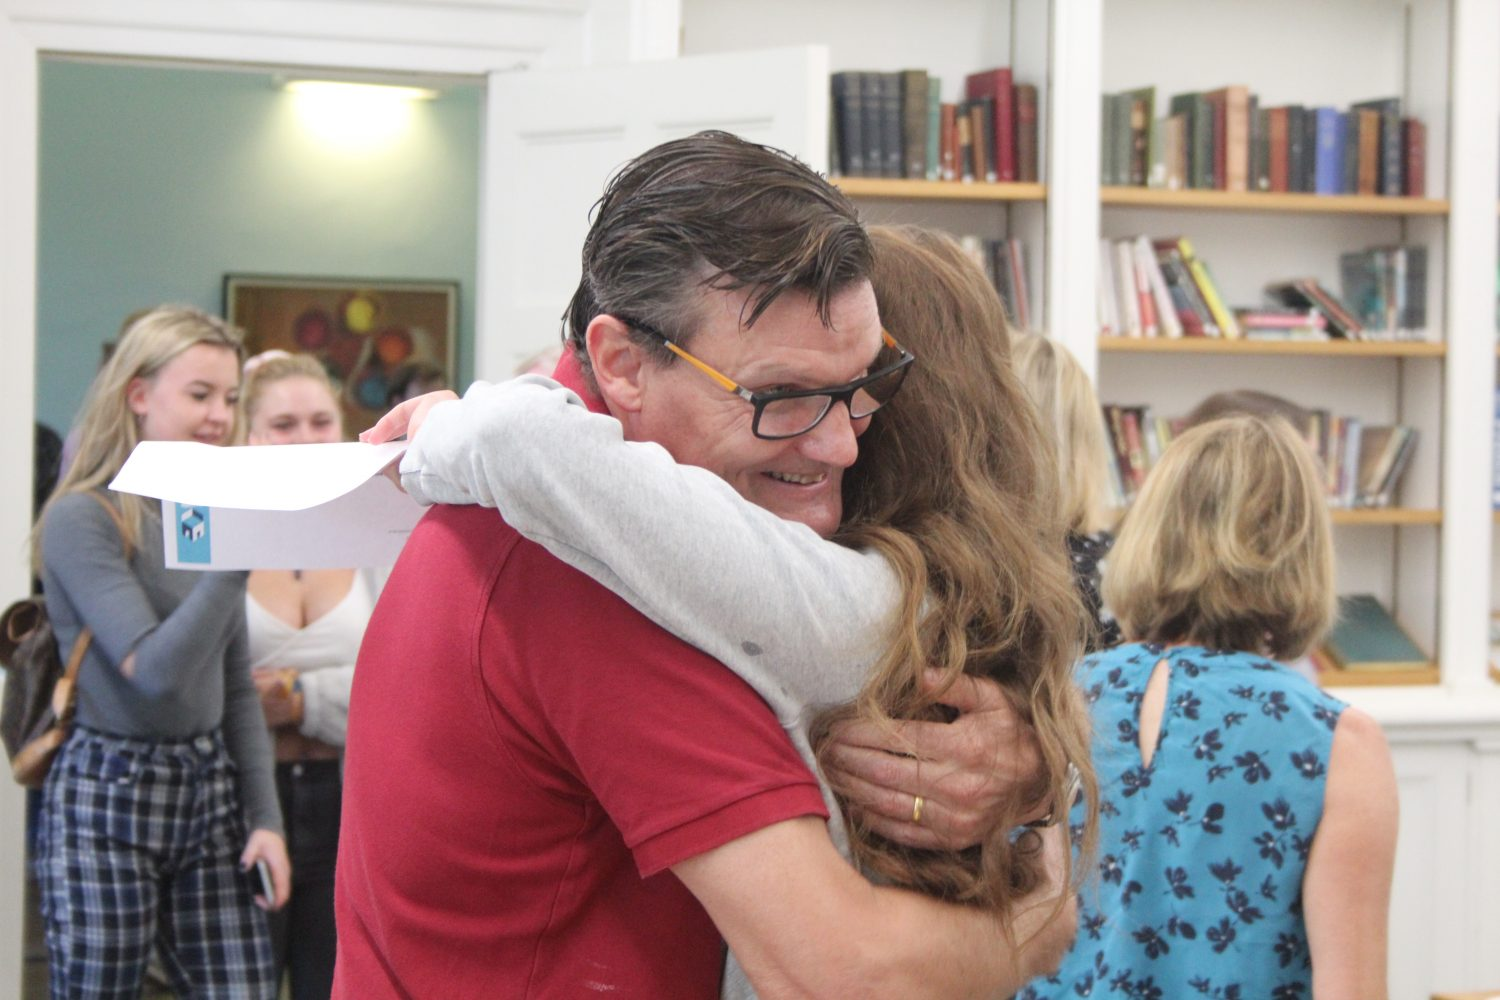 Superb GCSE results for hard-working King's Ely students